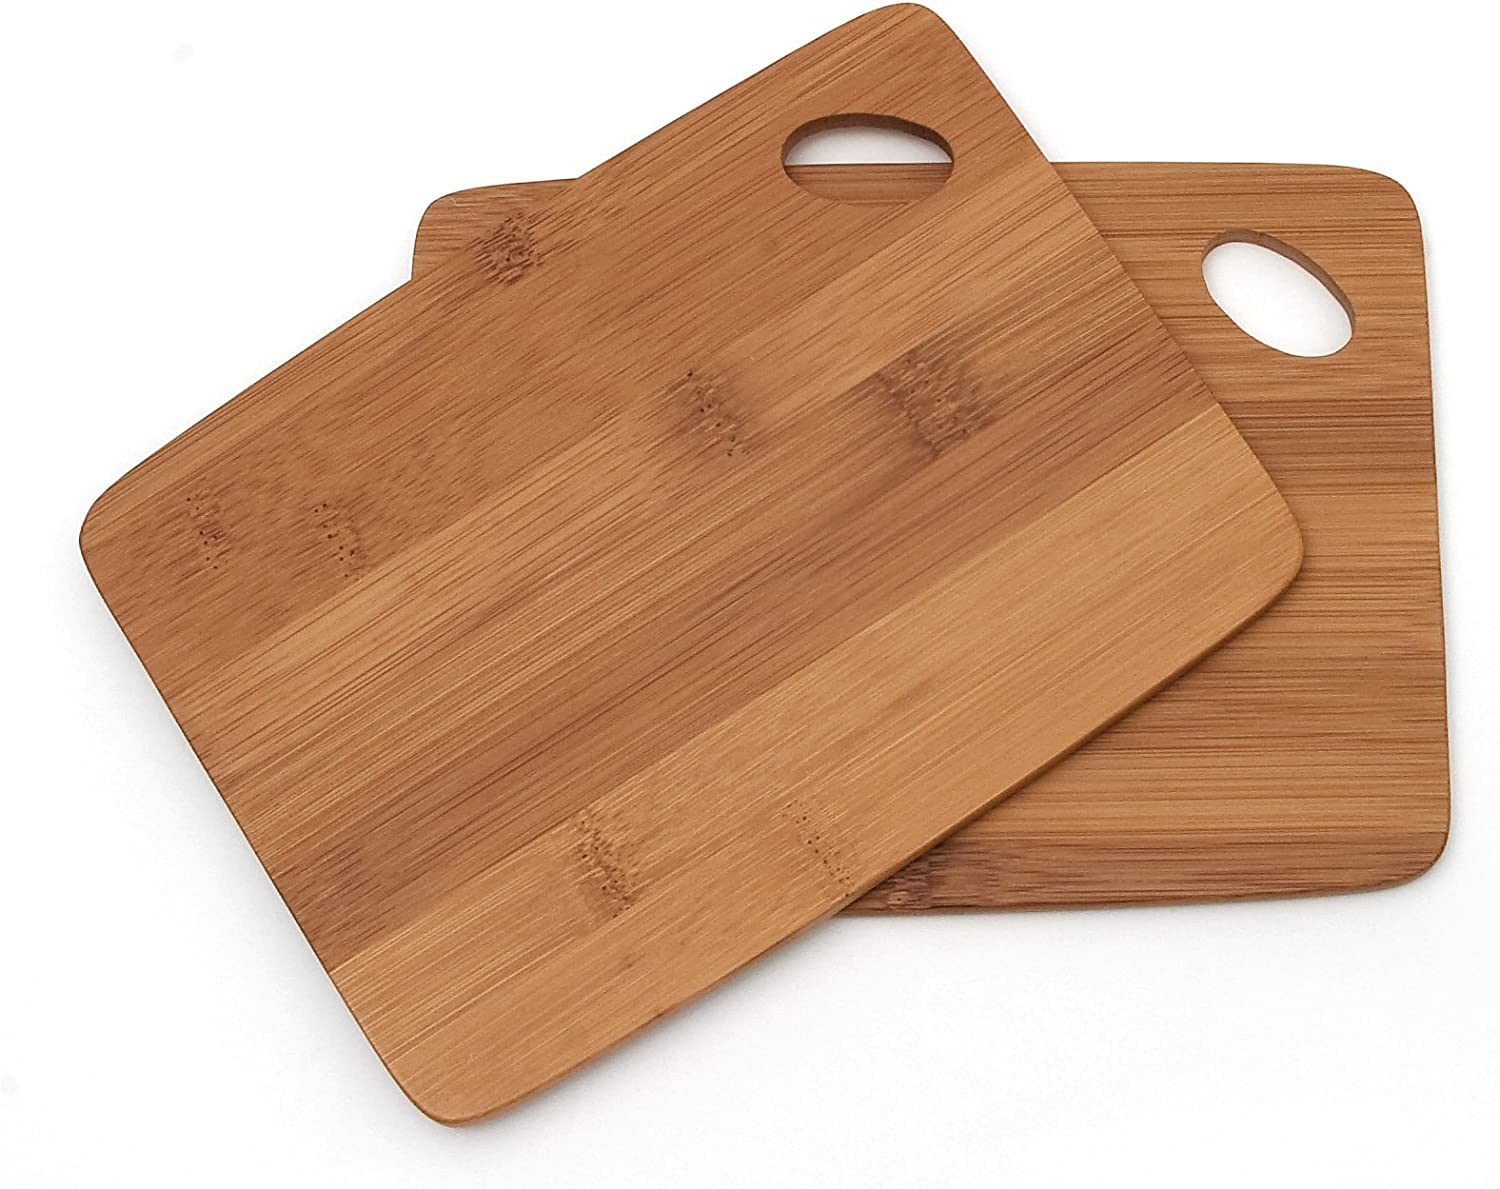 Lipper International Bamboo Wood Thin Kitchen Cutting Boards with Oval Hole in Corner, Set of 2 Boards, 6